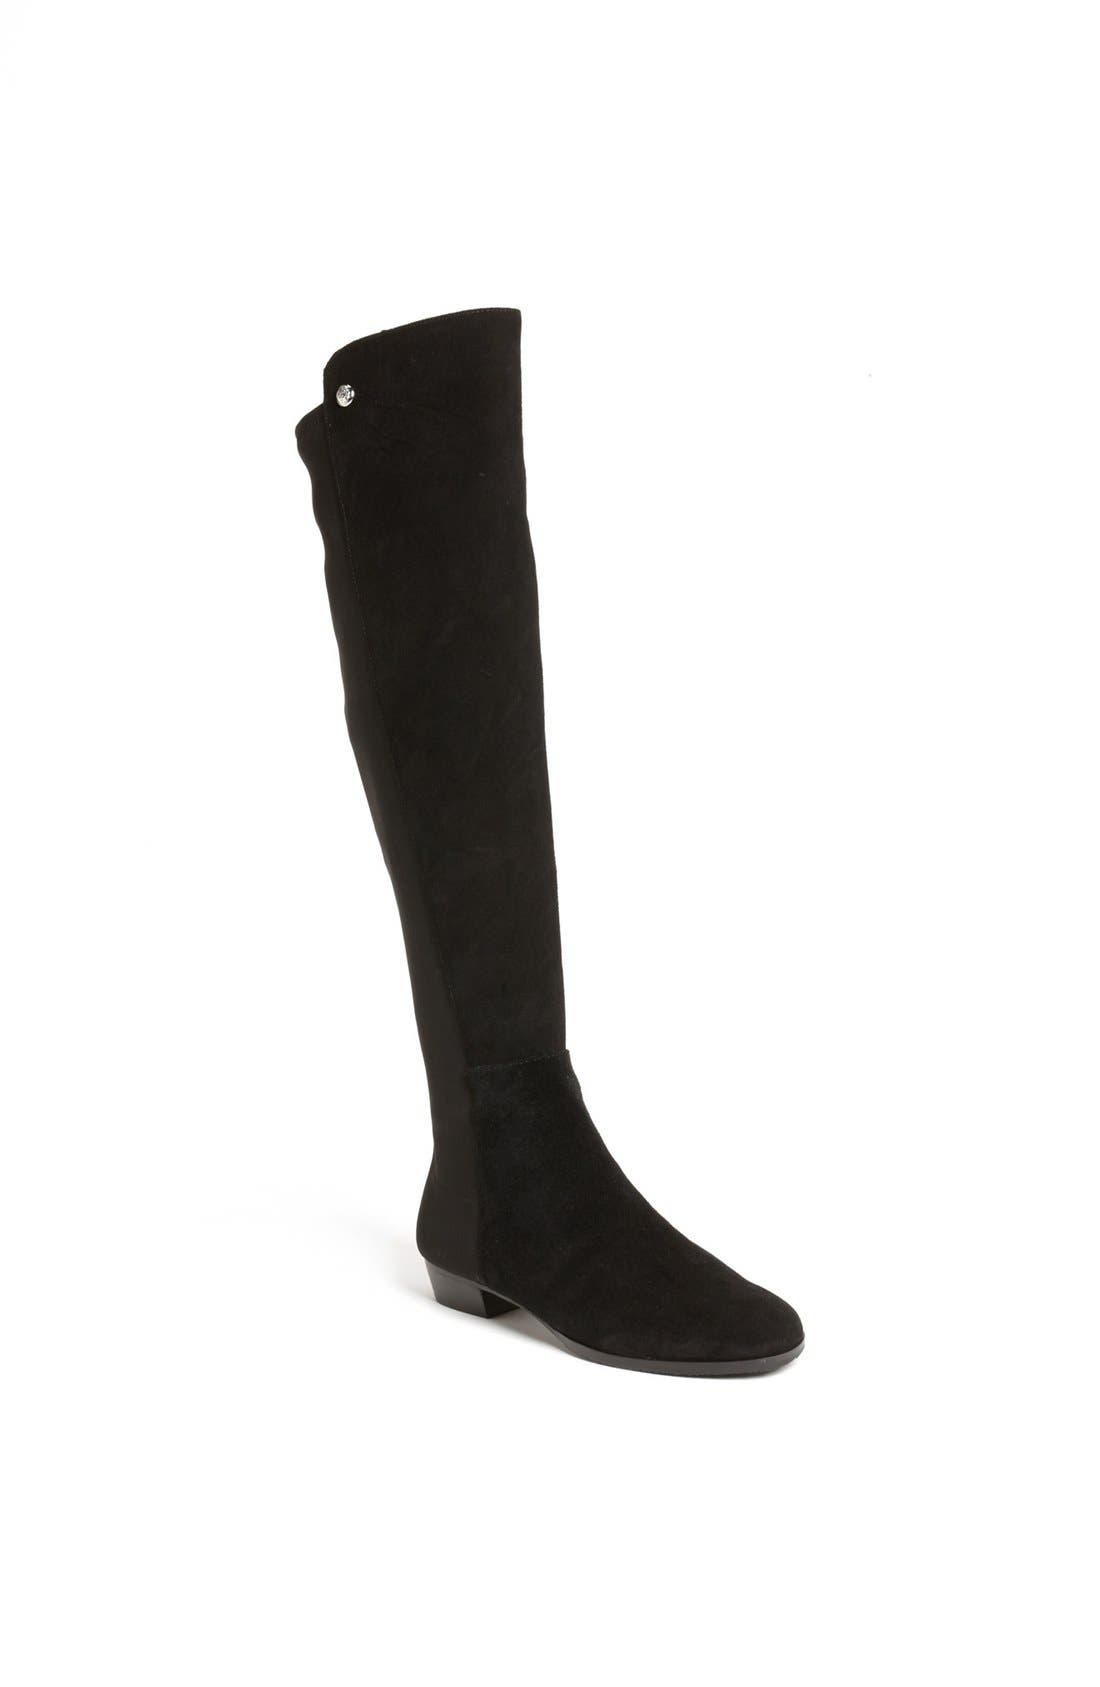 Alternate Image 1 Selected - Vince Camuto 'Karita' Over the Knee Boot